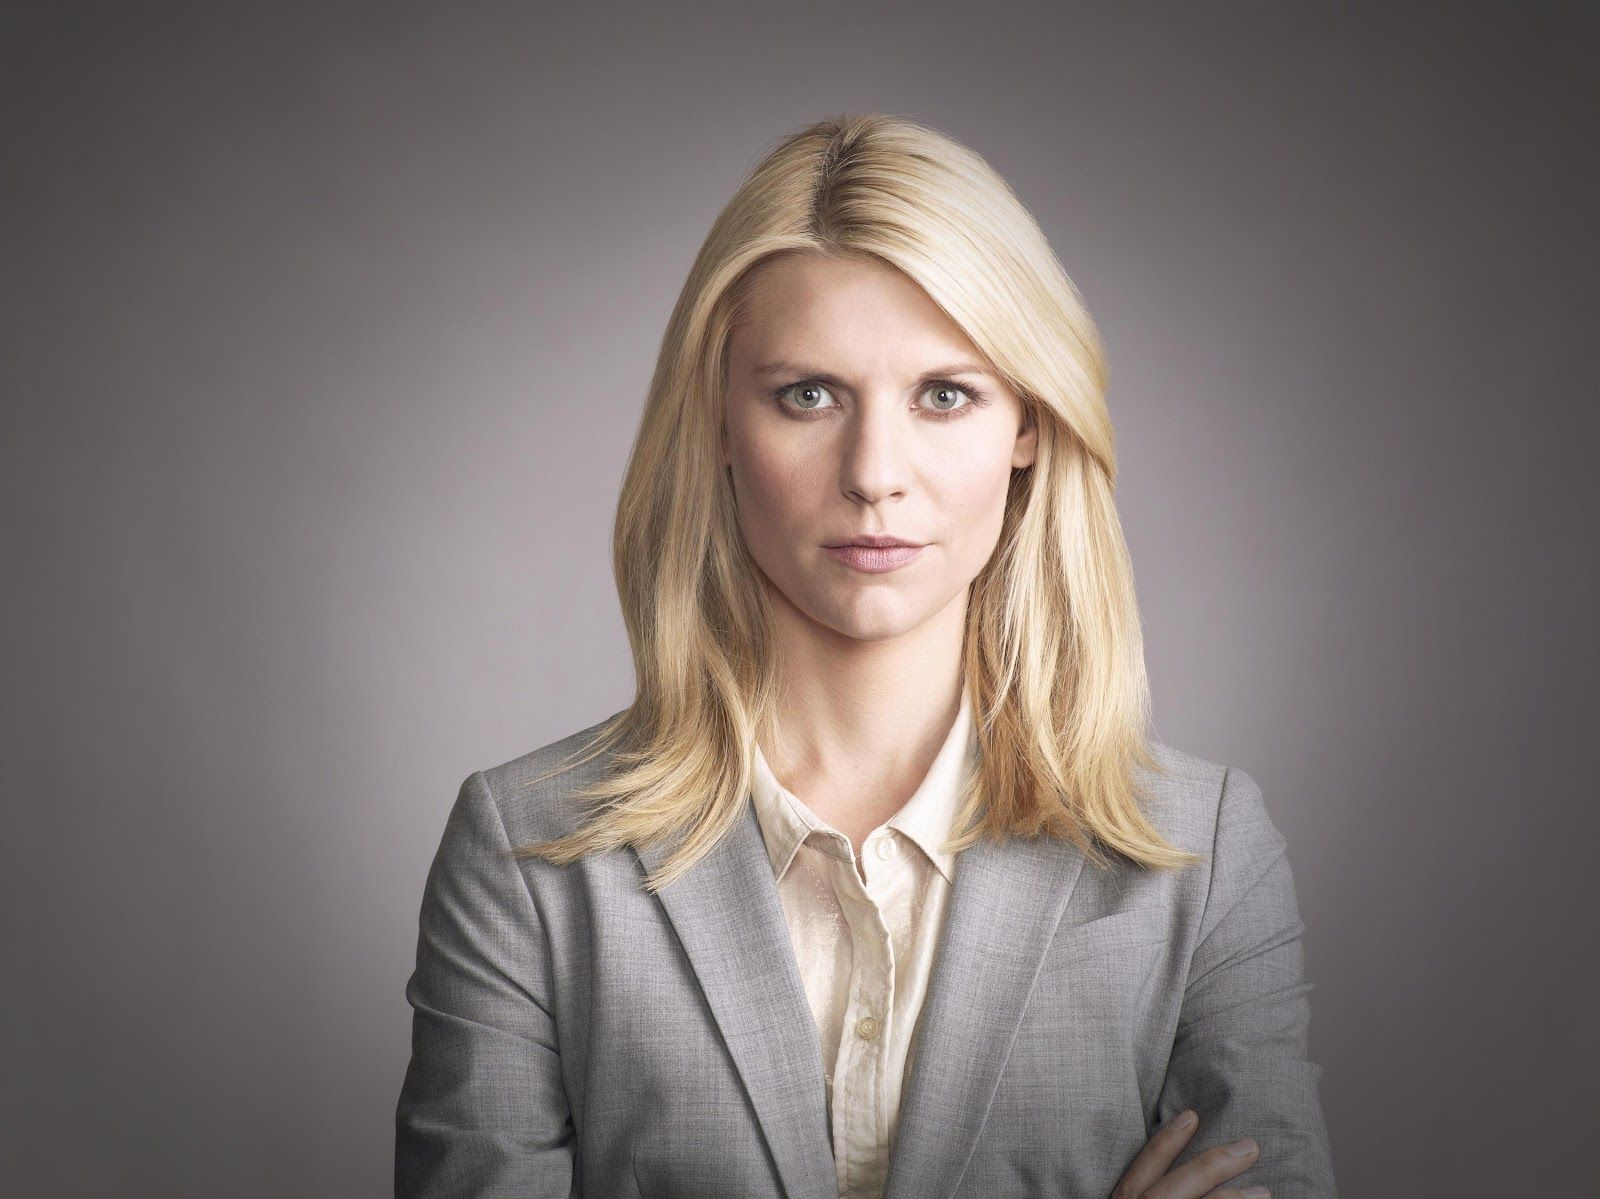 From Angela Chase to Carrie Mathison: Claire Danes' 10 BestRoles